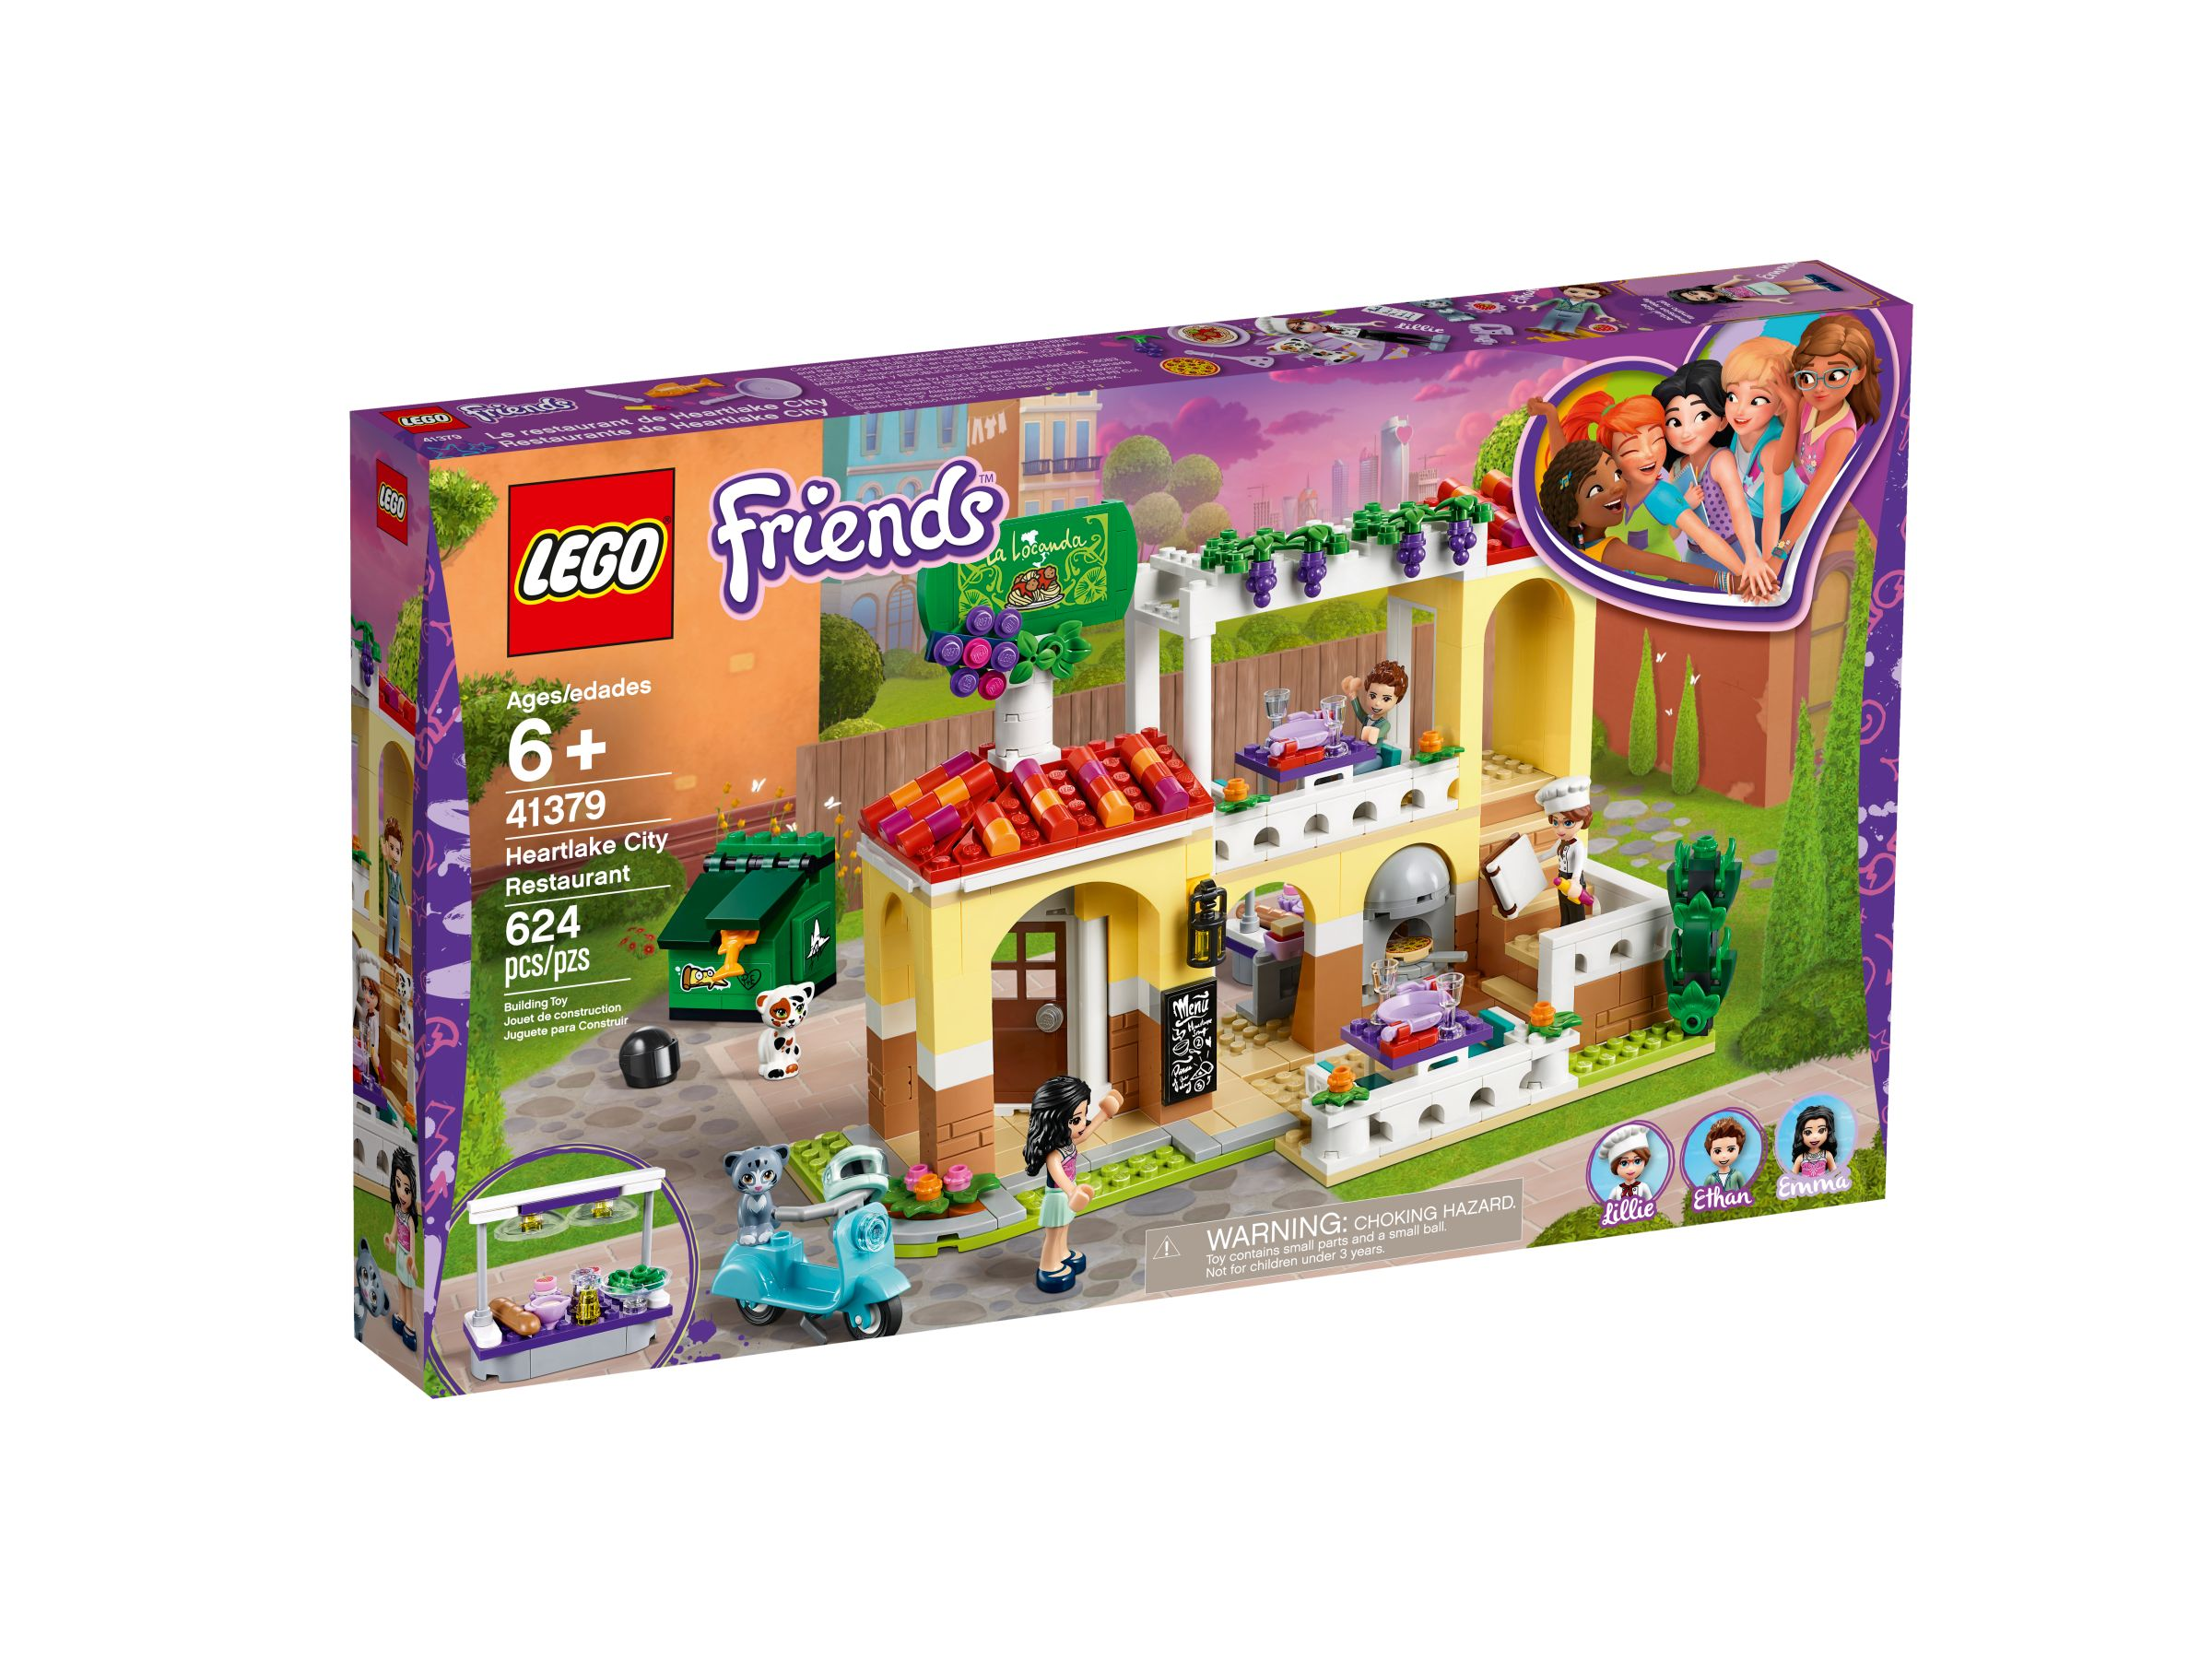 LEGO Friends 41379 Heartlake City Restaurant LEGO_41379_alt1.jpg